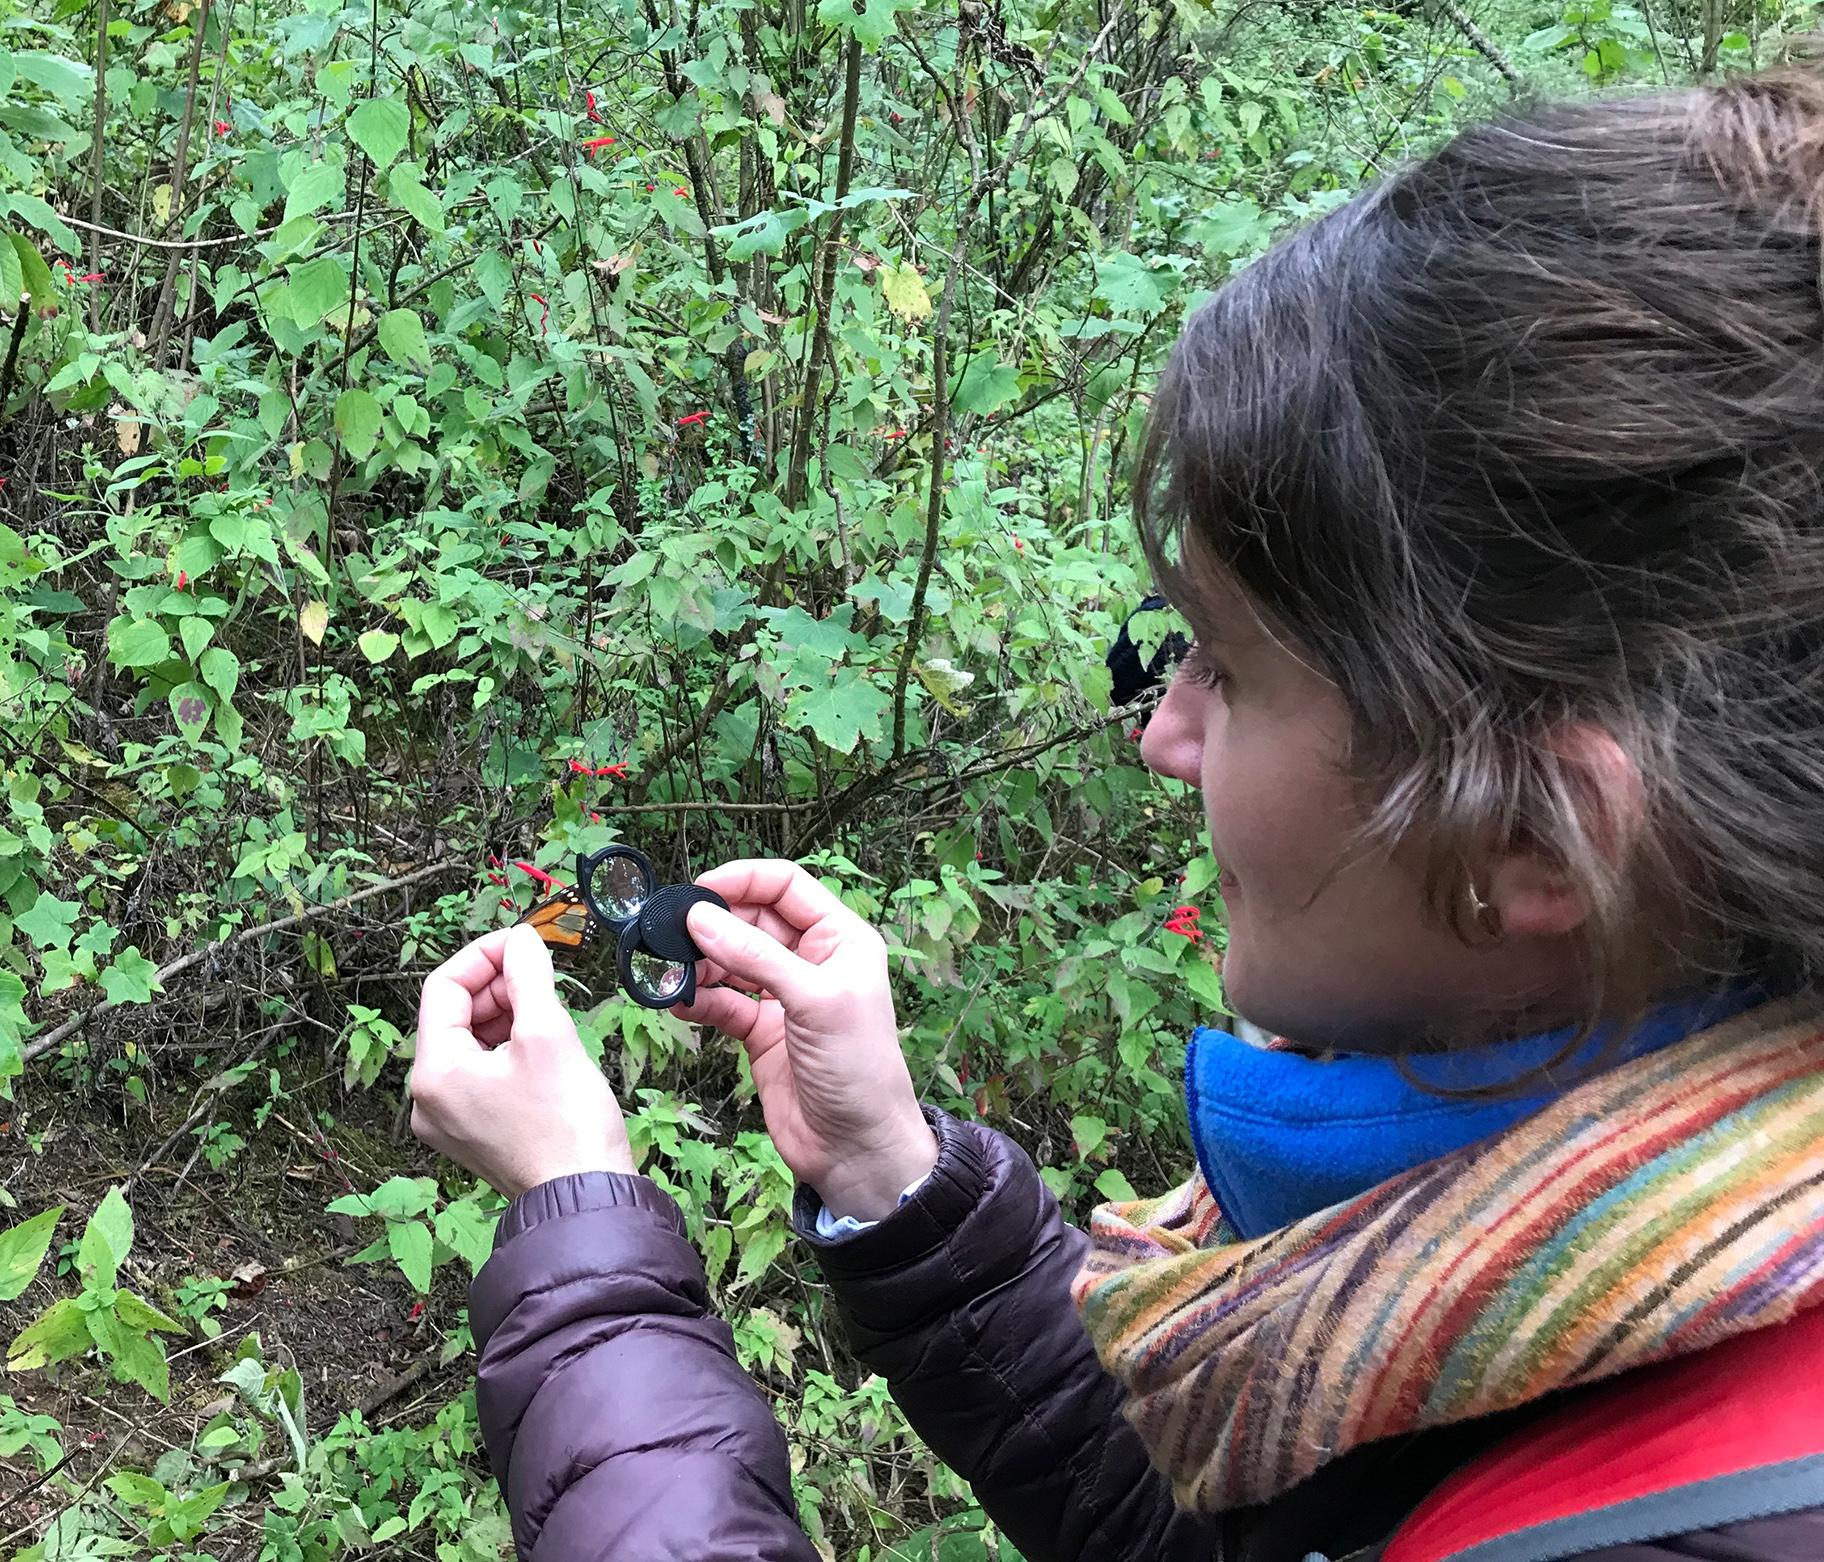 Field Museum senior conservation ecologist Abigail Derby Lewis examines a monarch butterfly. (Courtesy The Field Museum)